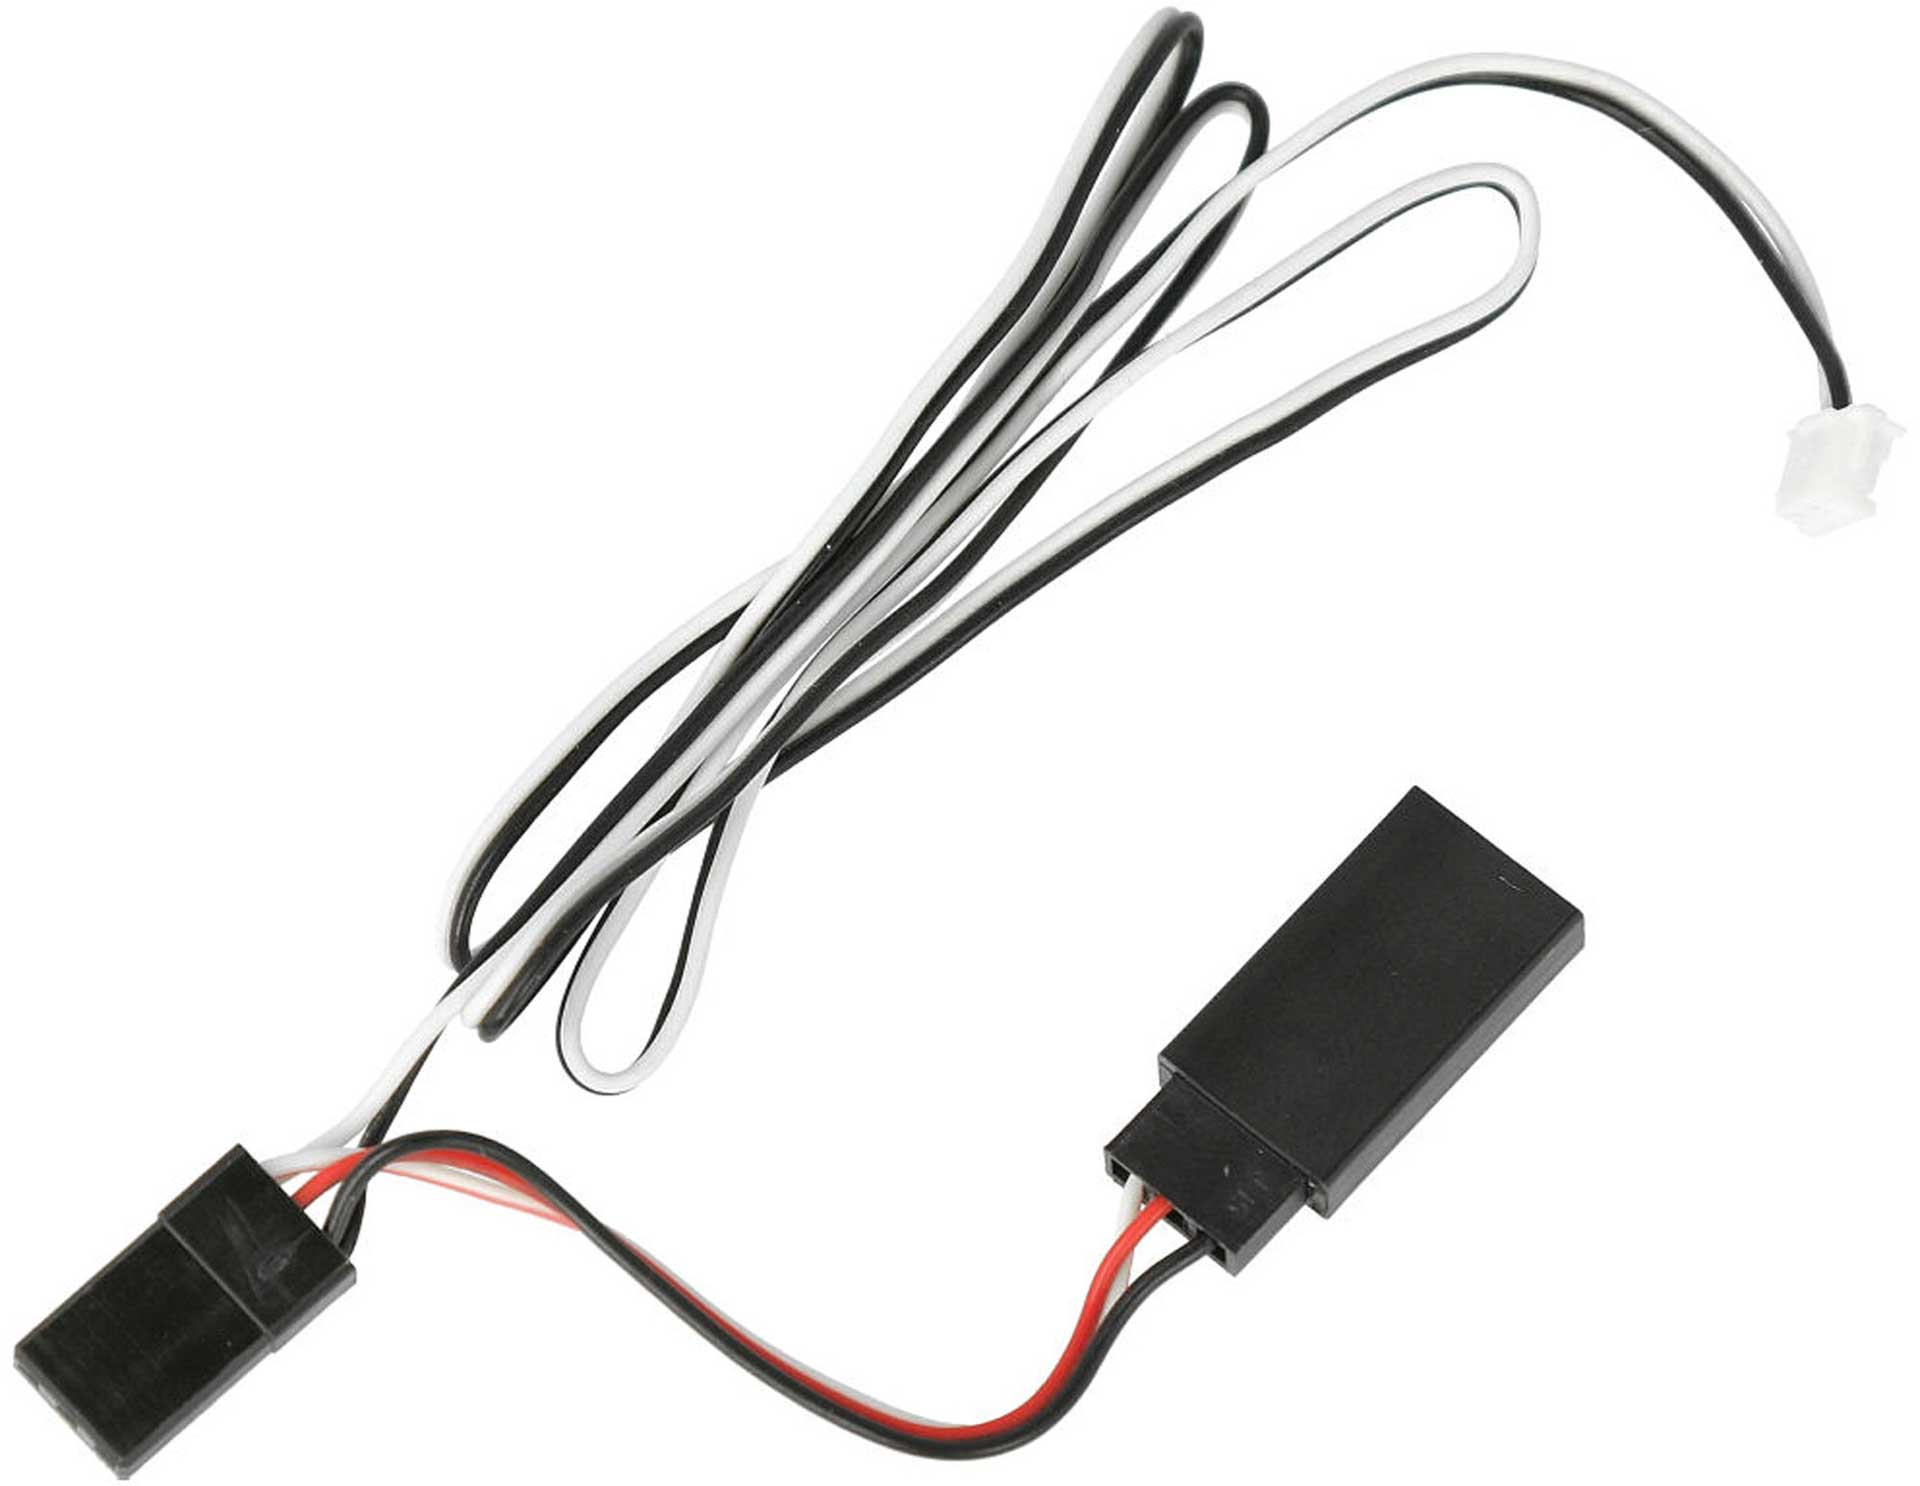 HOBBYWING VBAR CONNECTION CABLE F. PLATINUM CONTROLLER TELEMETRY AS OF VERSION 4/4.1 APPROX. 50CM